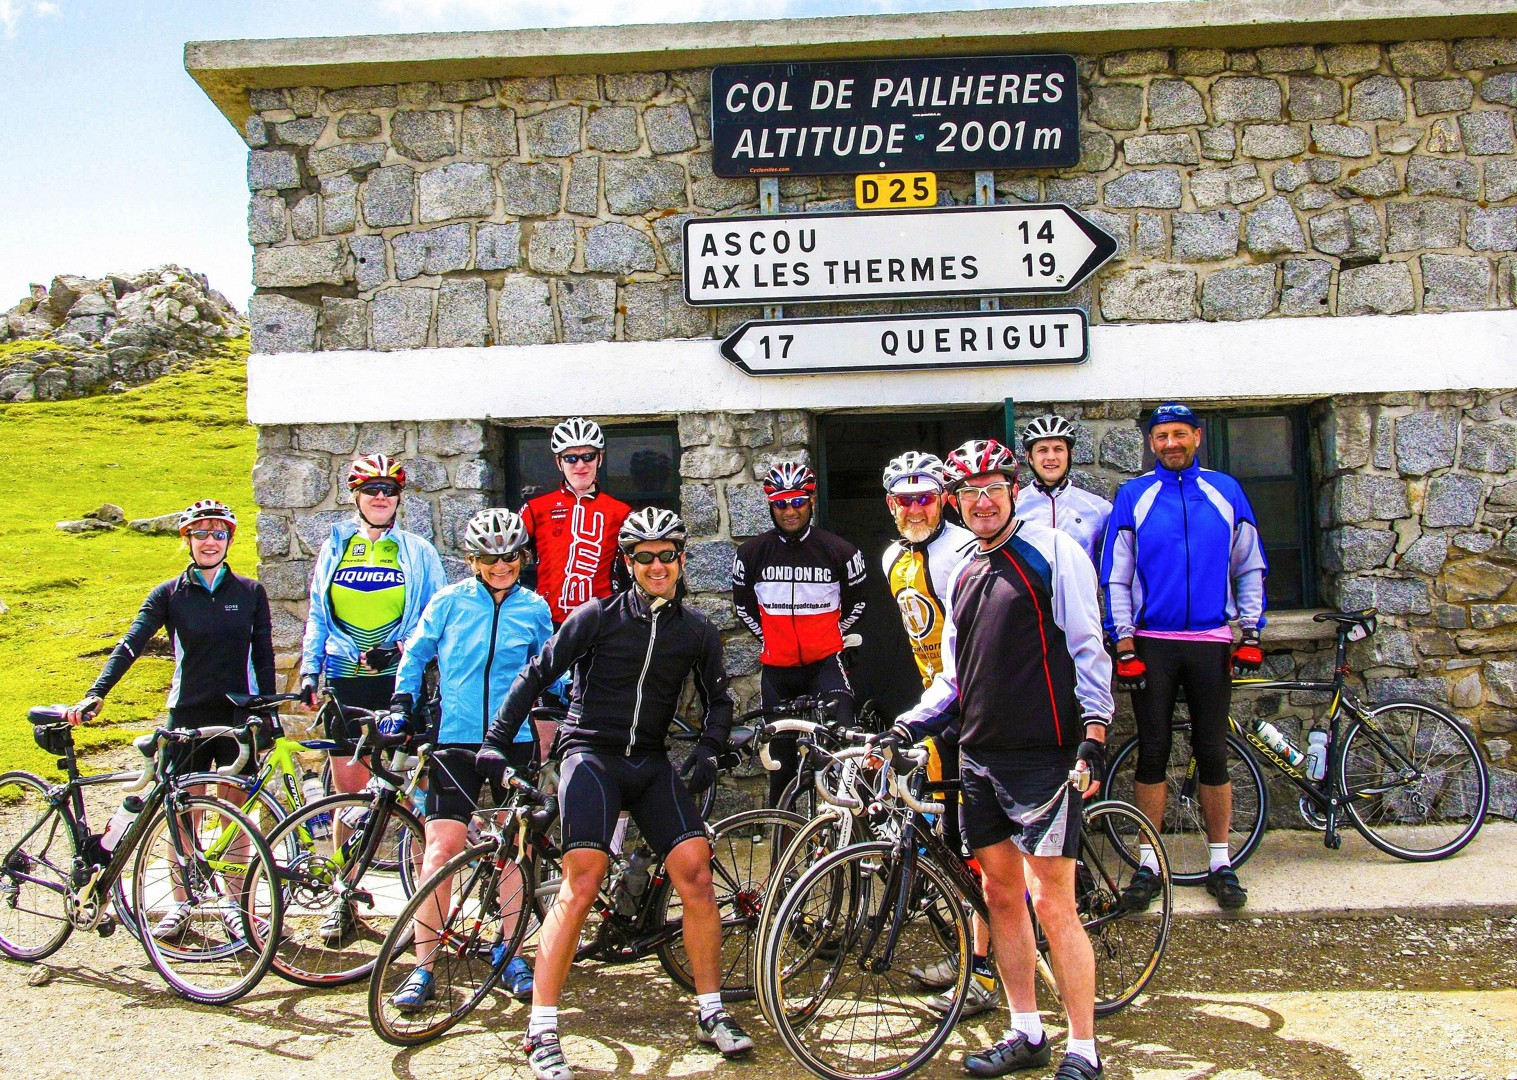 ascou-guided-cycling-holiday-france-pailheres-pyrenees.jpg - France - Pyrenees Fitness Week (Grade 2-3) - Guided Road Cycling Holiday - Road Cycling